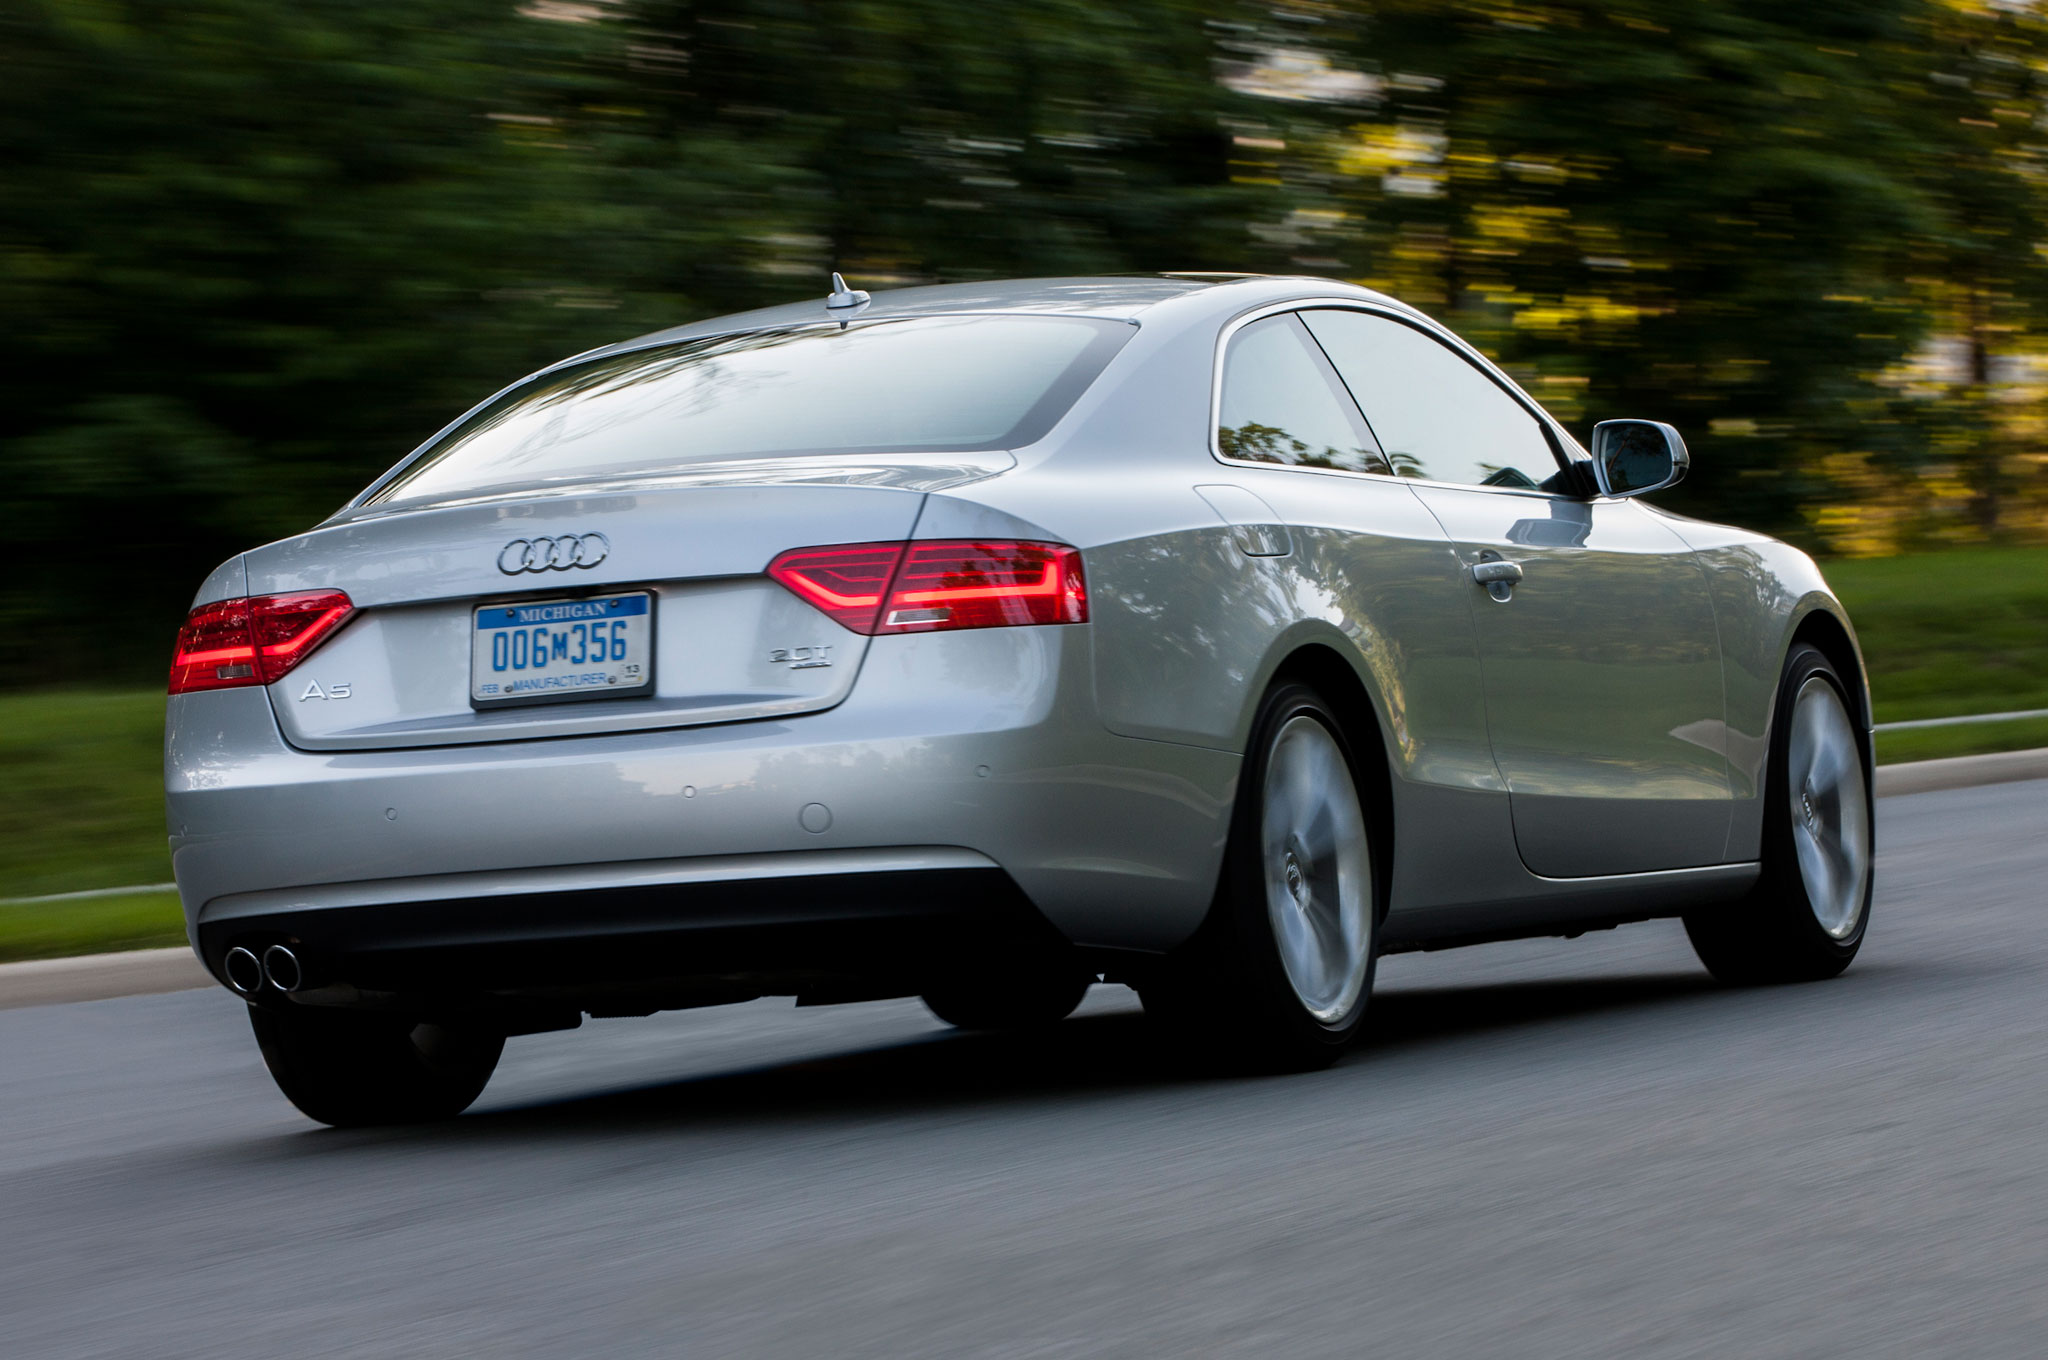 Audi Lineup Pricing Revealed From Q To A W - Audi a4 coupe